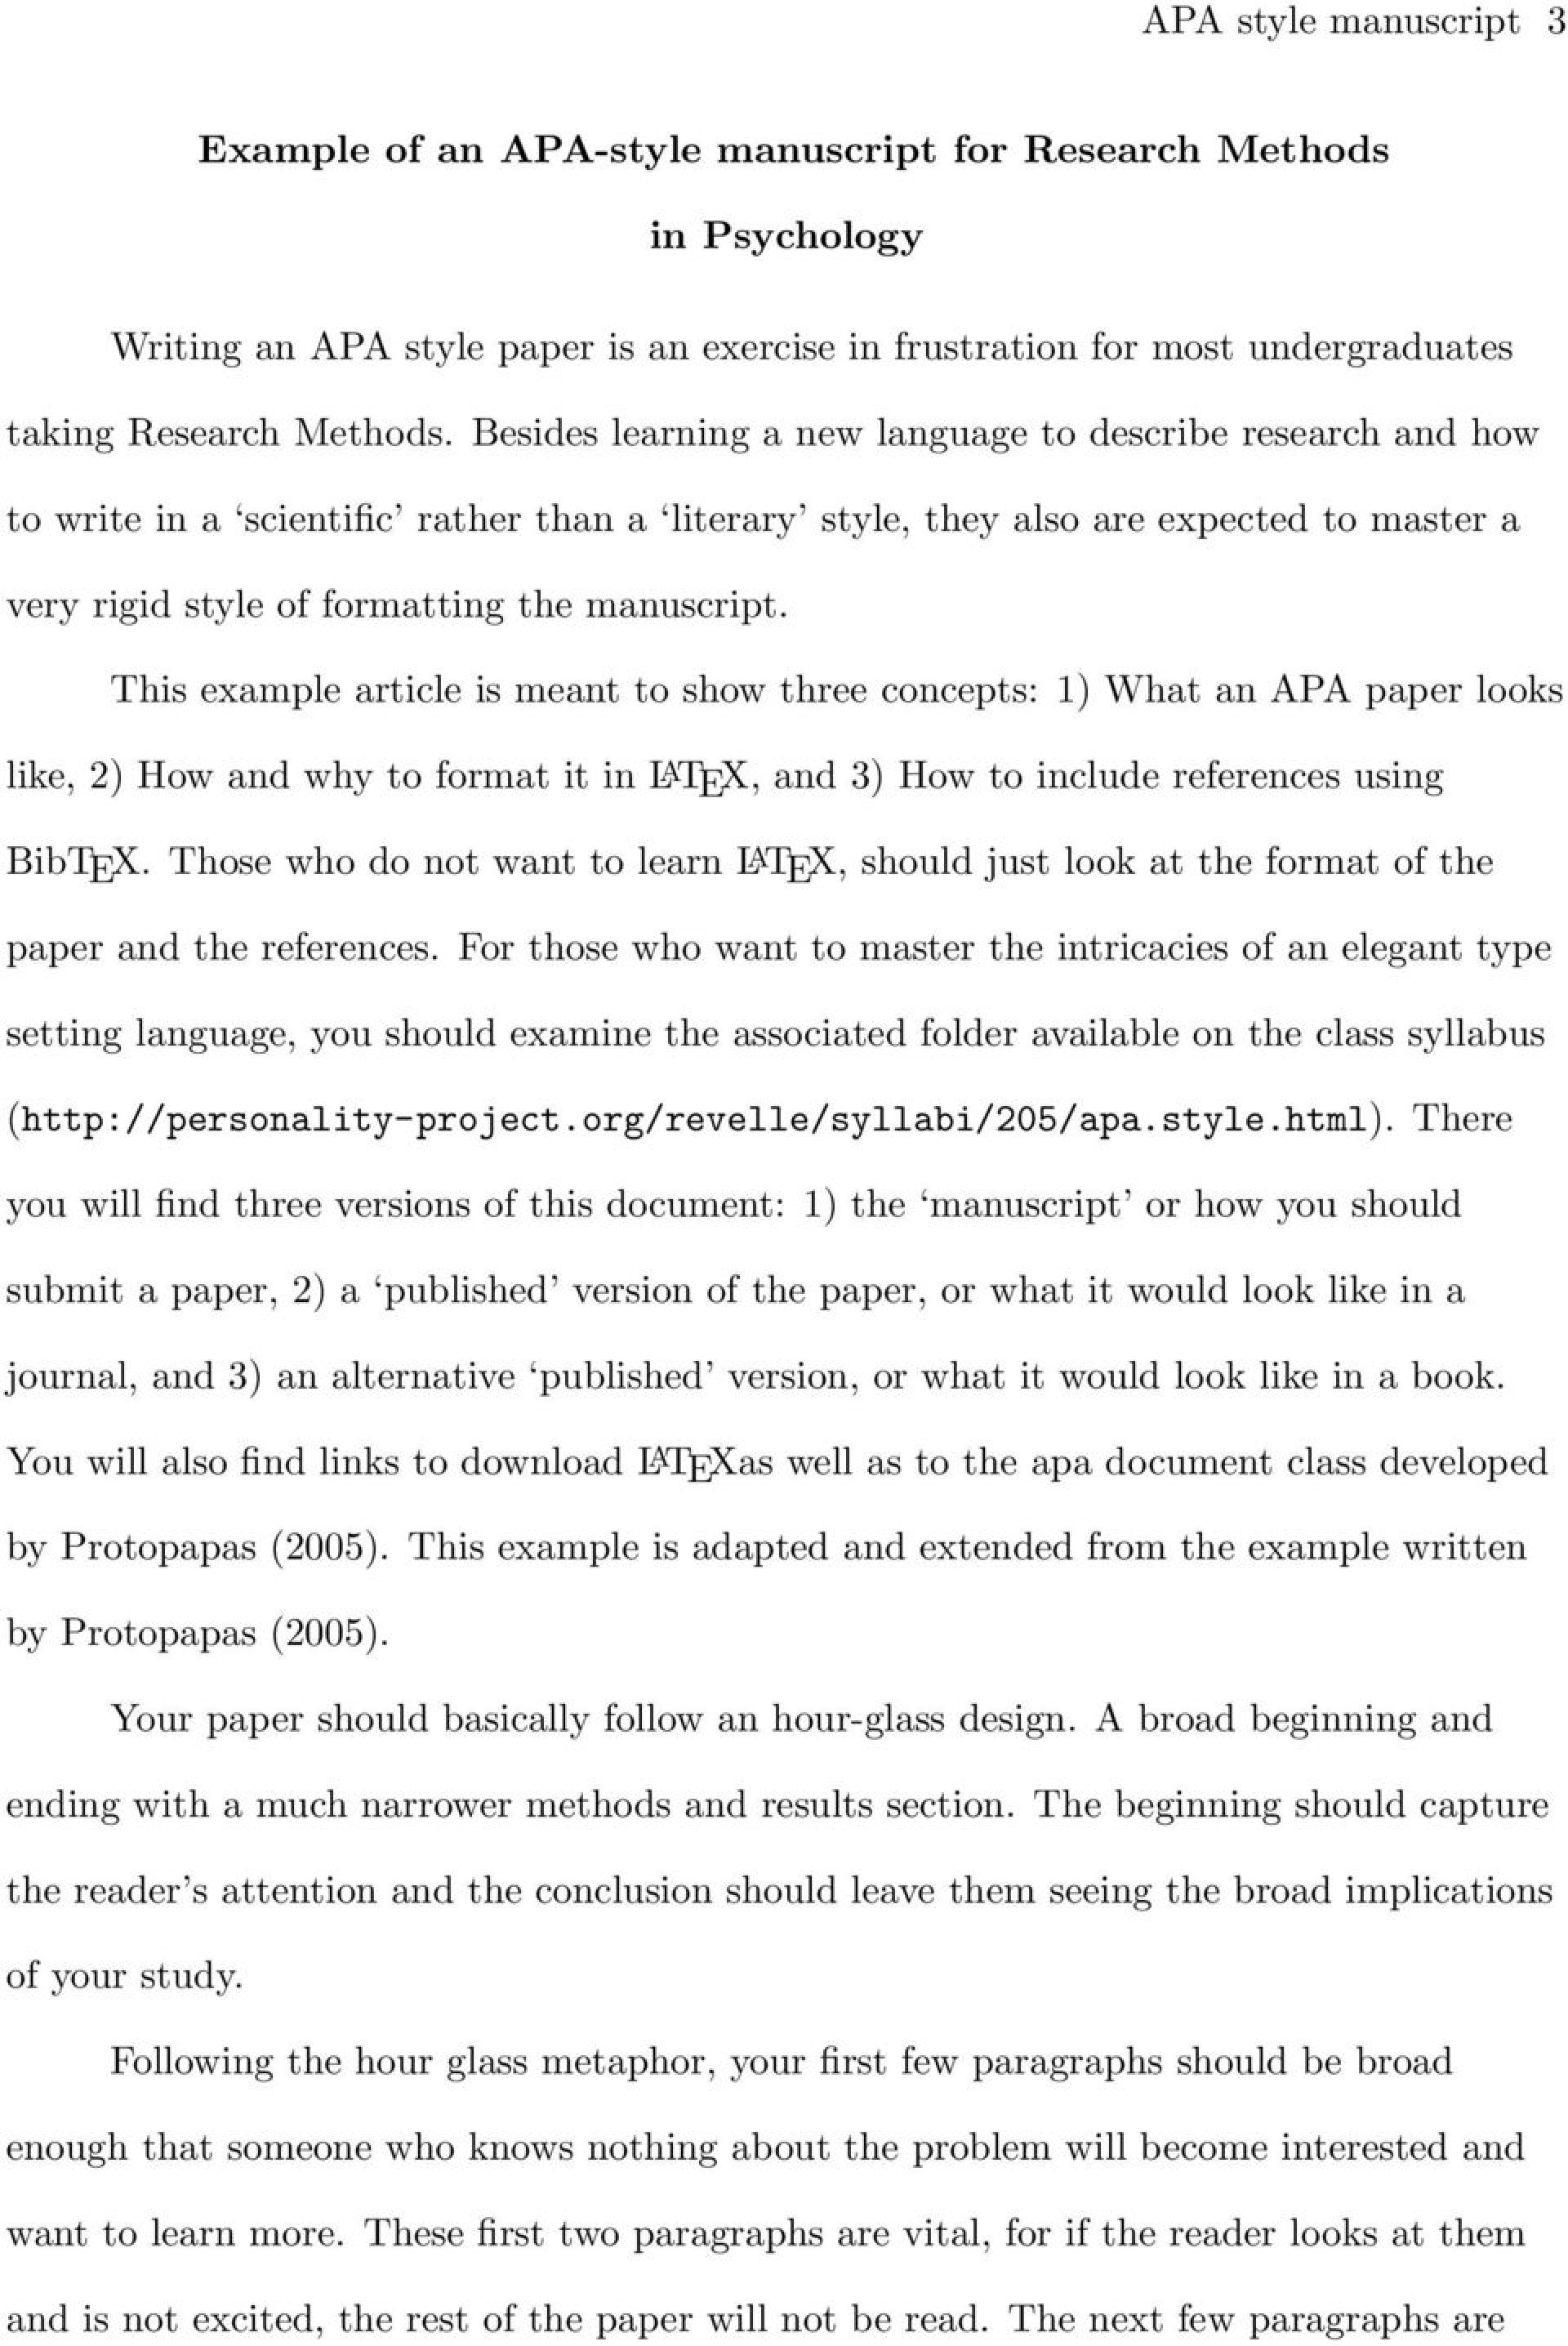 005 Page 3 Apa Style Research Paper Methods Archaicawful Section 1920